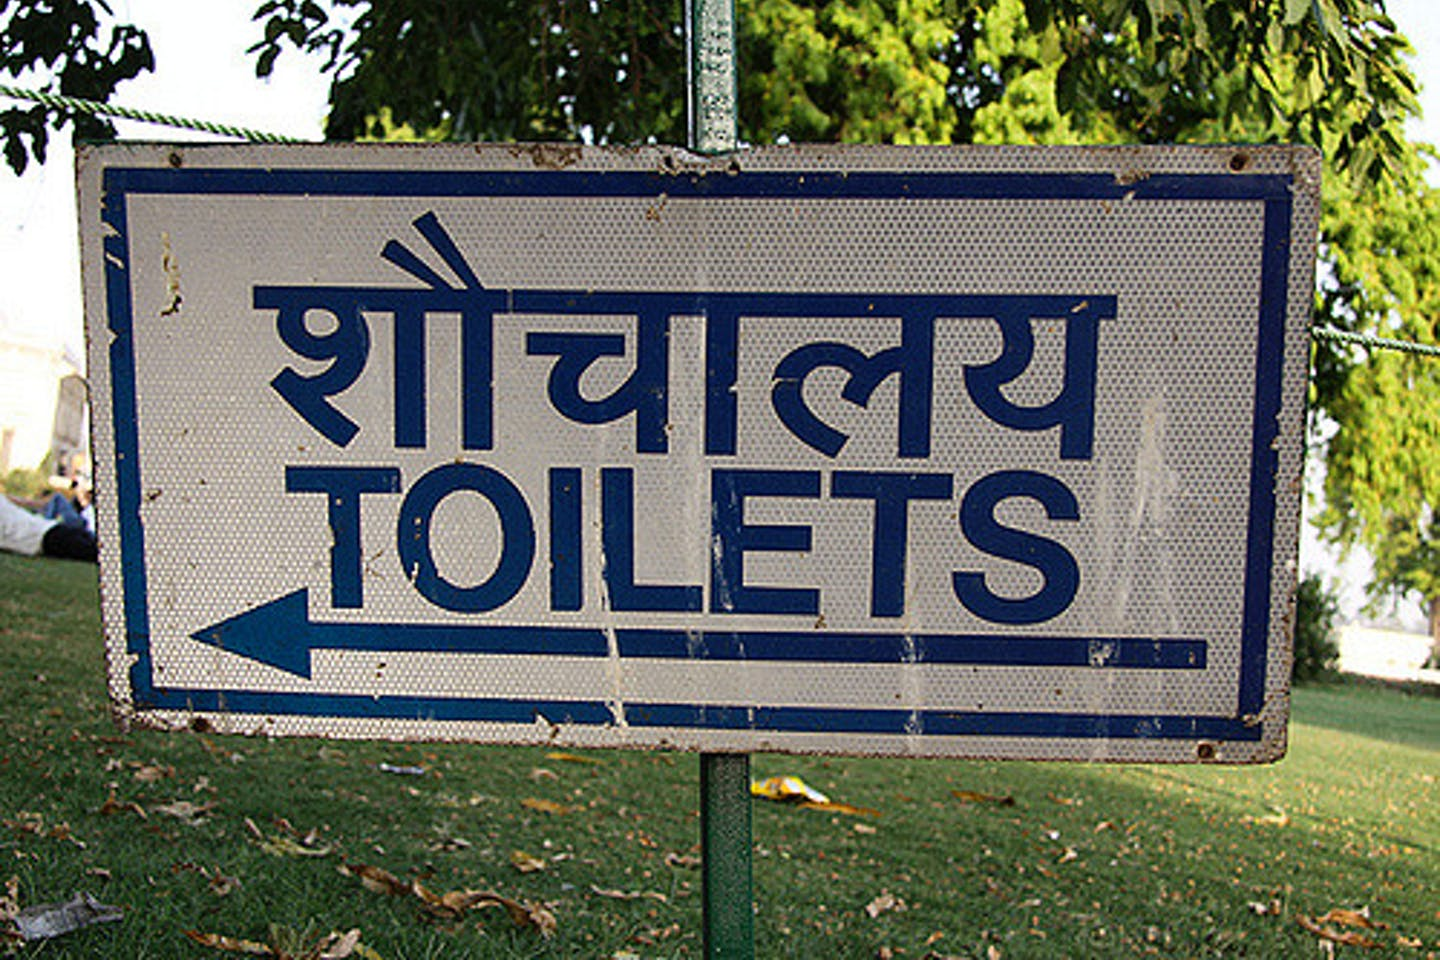 A toilet sign in India